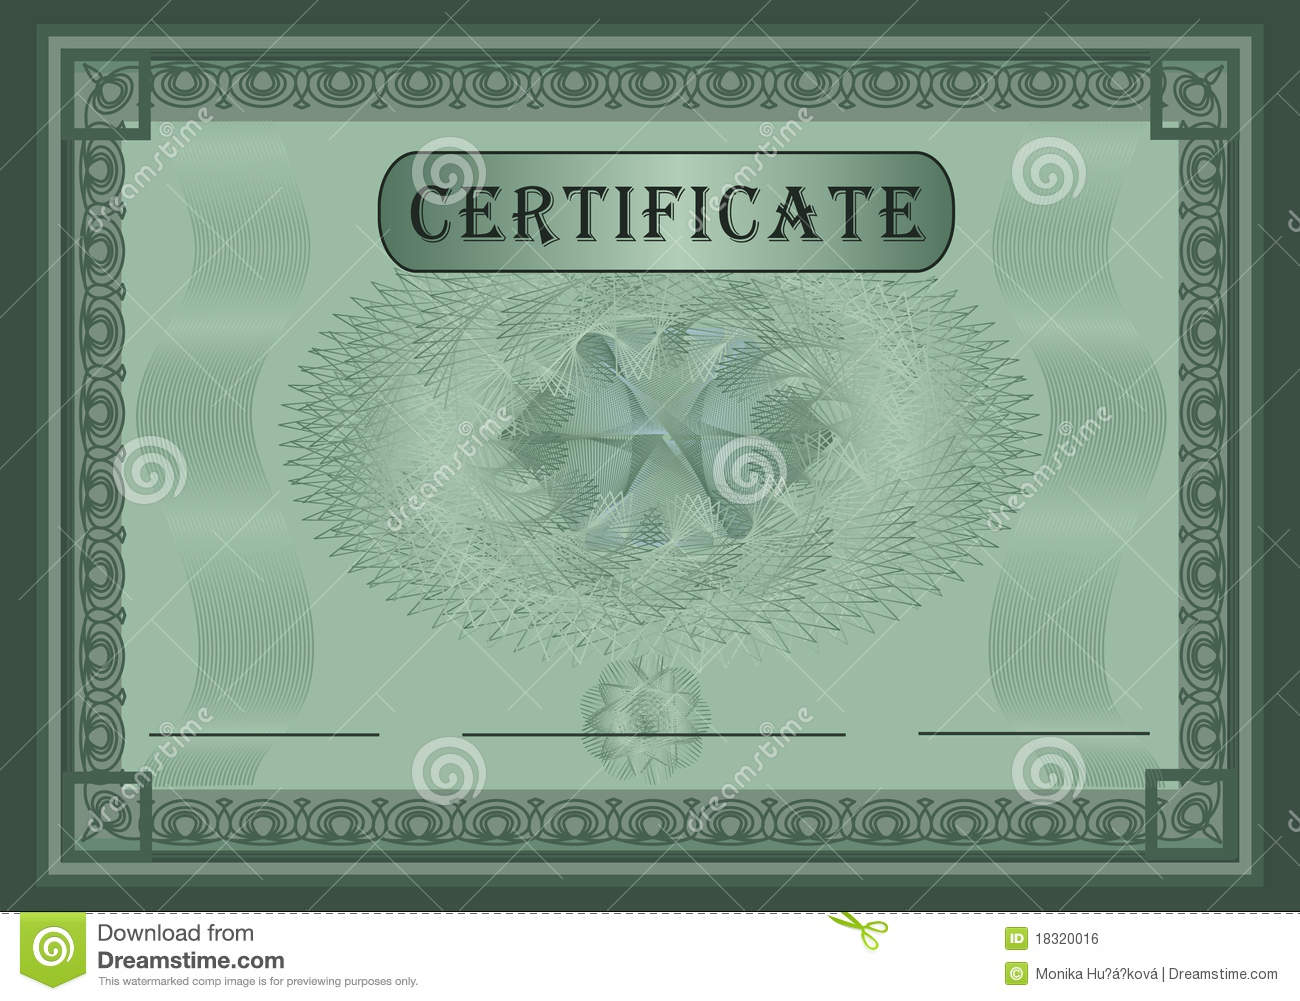 Certificate Green Stock Vector Illustration Of Security 18320016